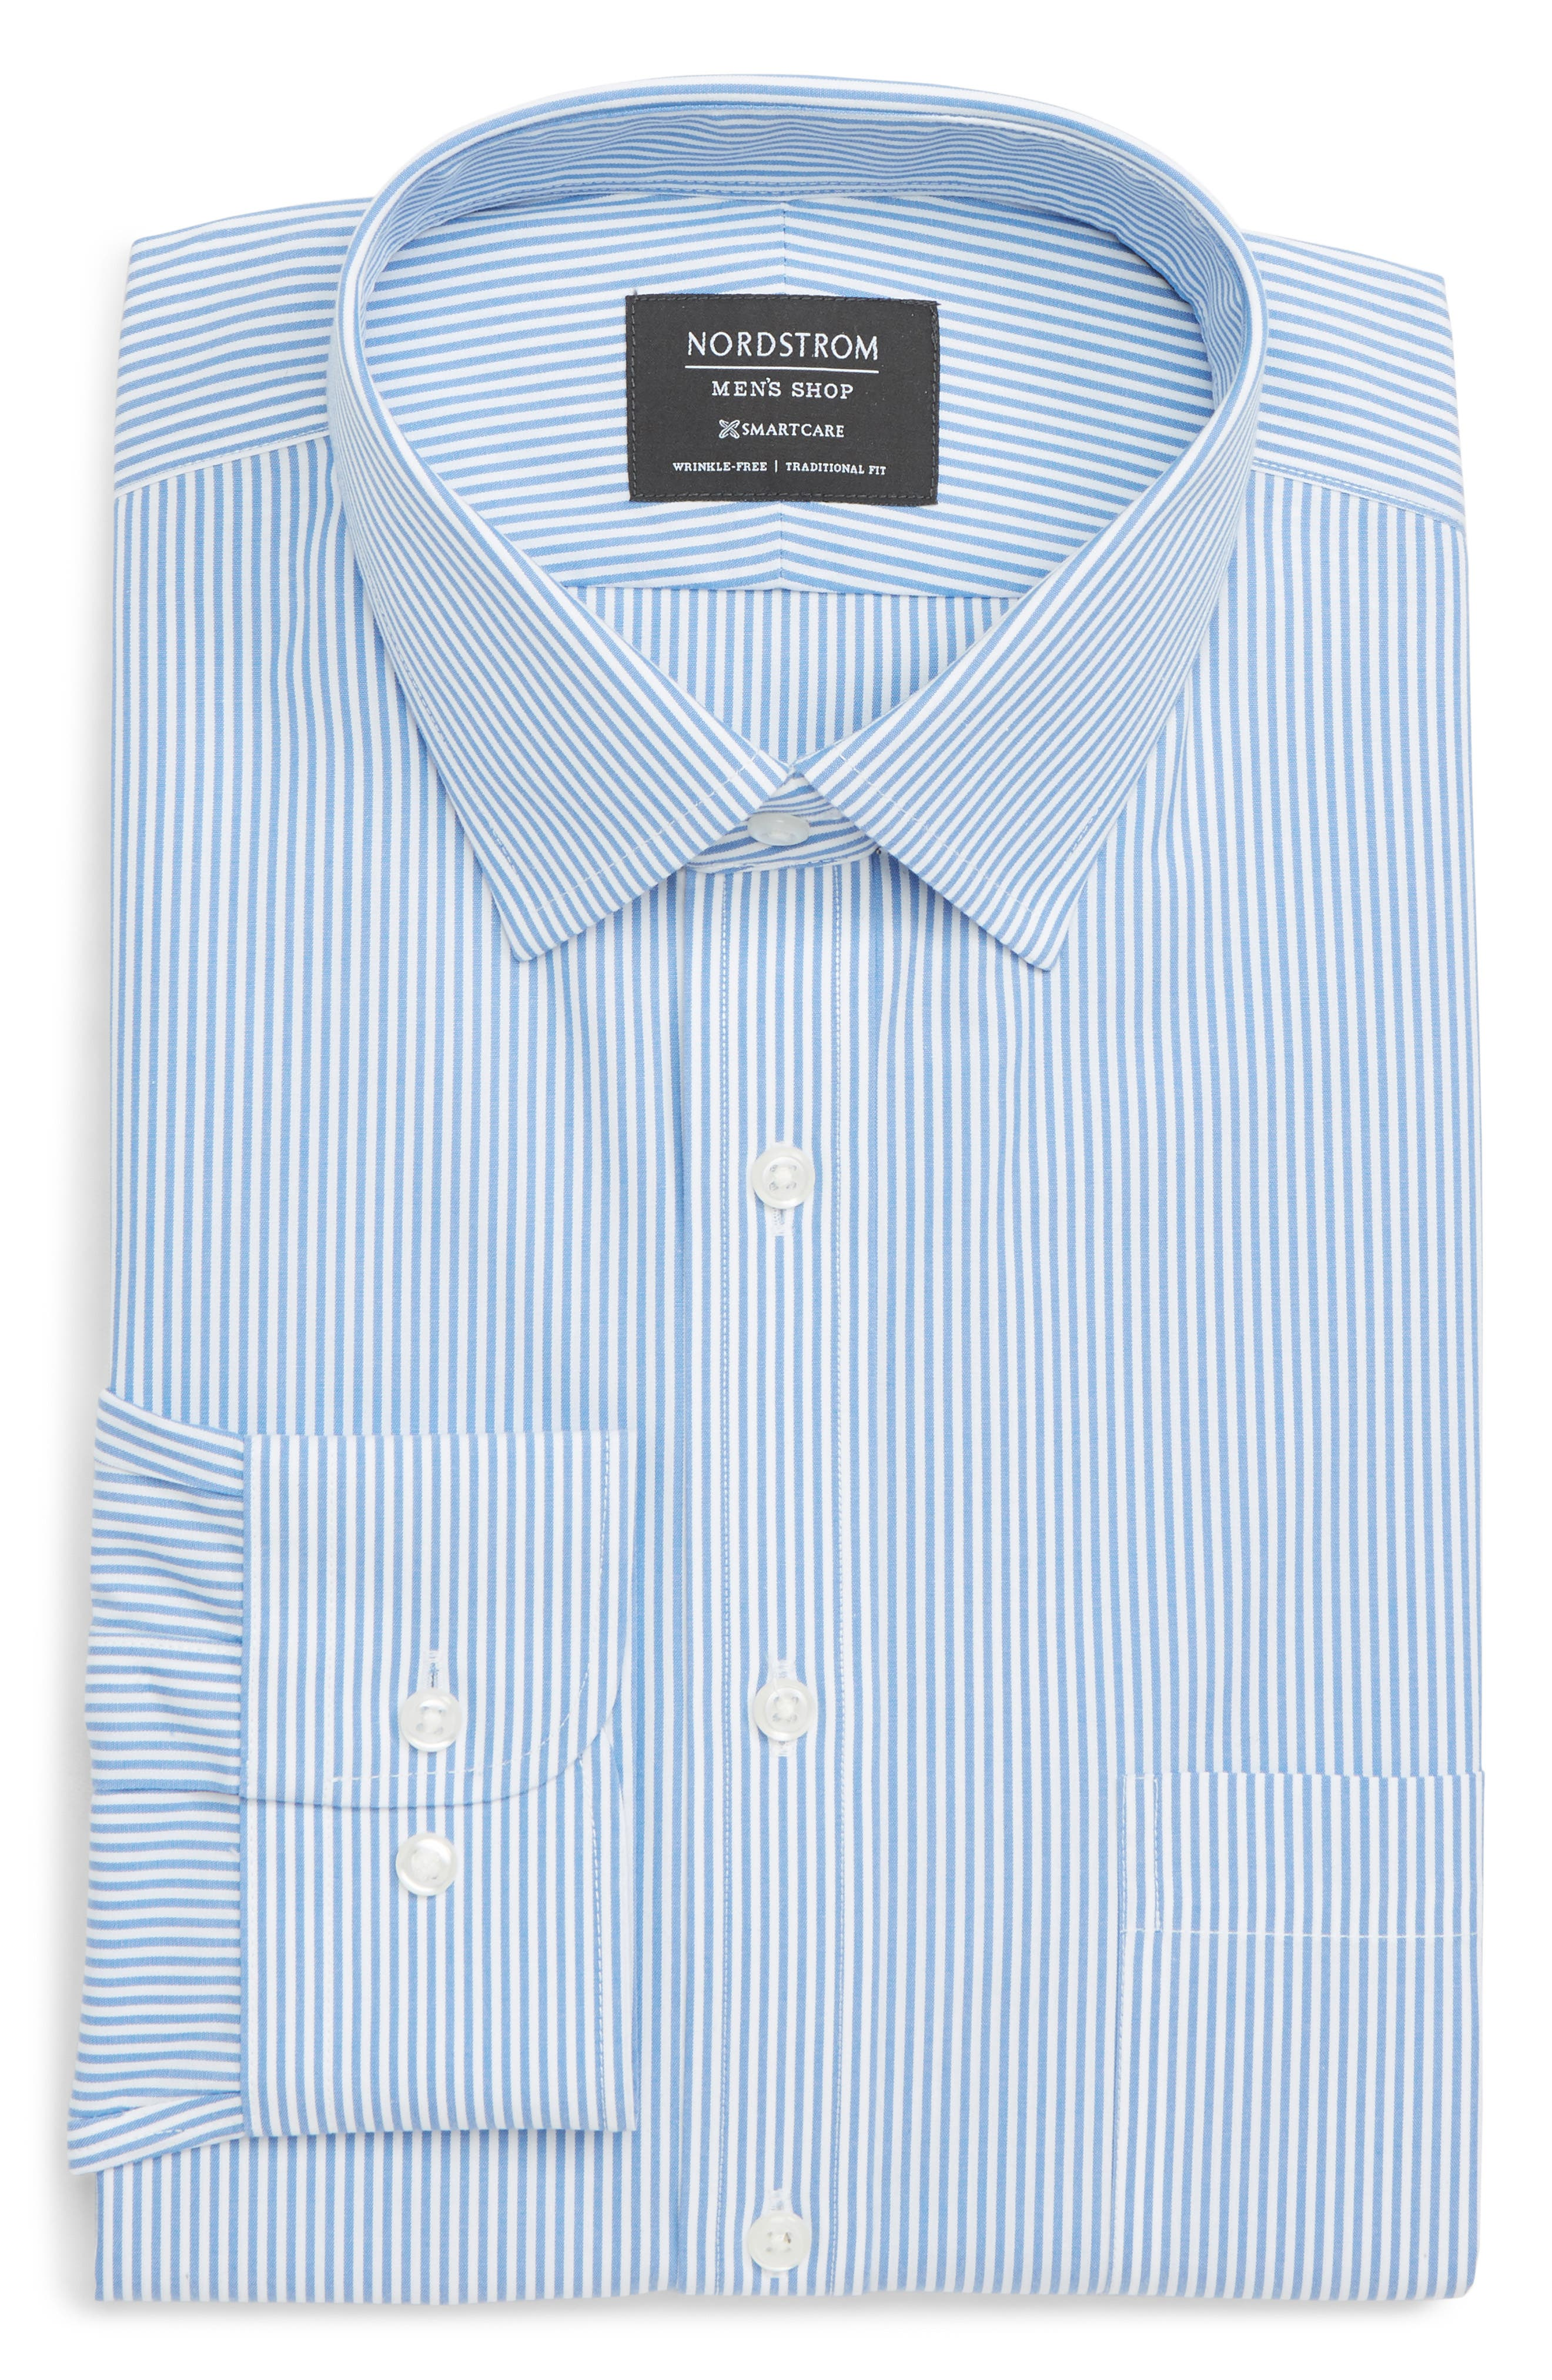 Nordstrom Shop Smartcare(TM) Traditional Fit Stripe Dress Shirt - Blue